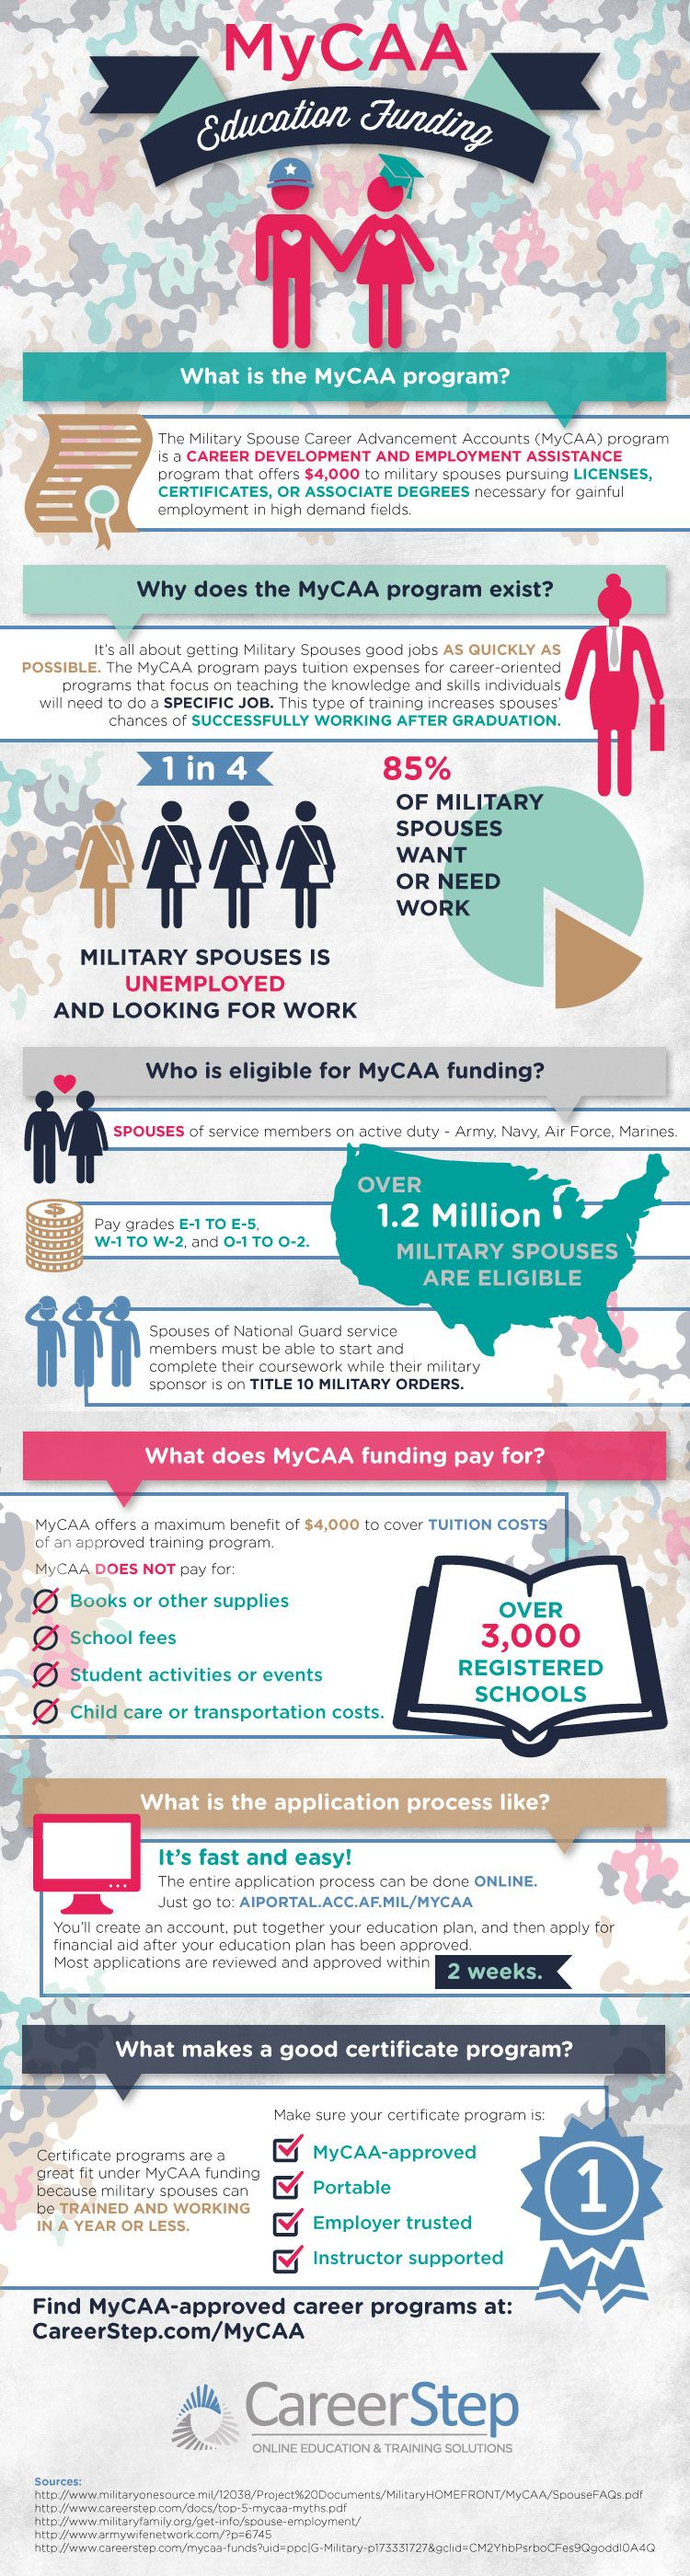 Infographic Education Funding Education Military Spouse